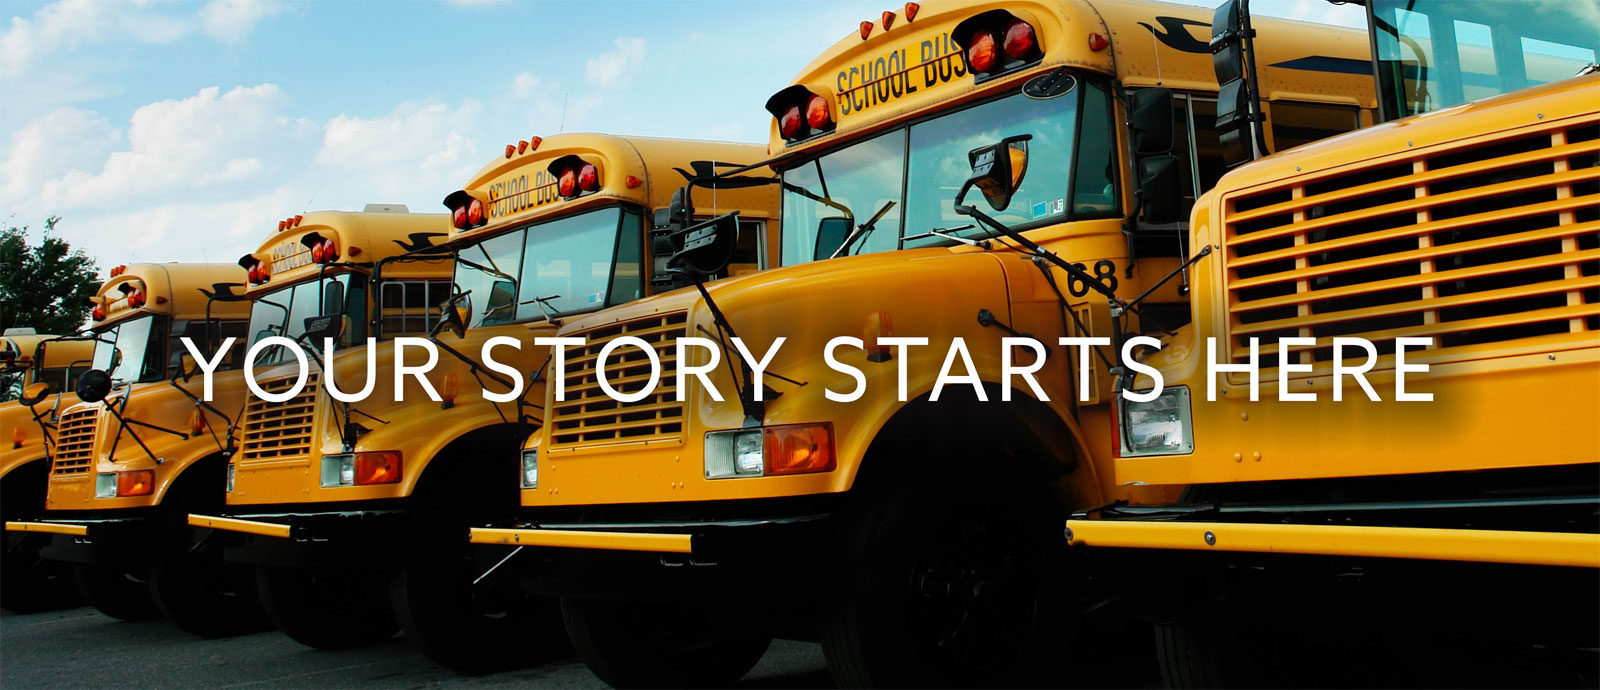 Your Story Starts Here